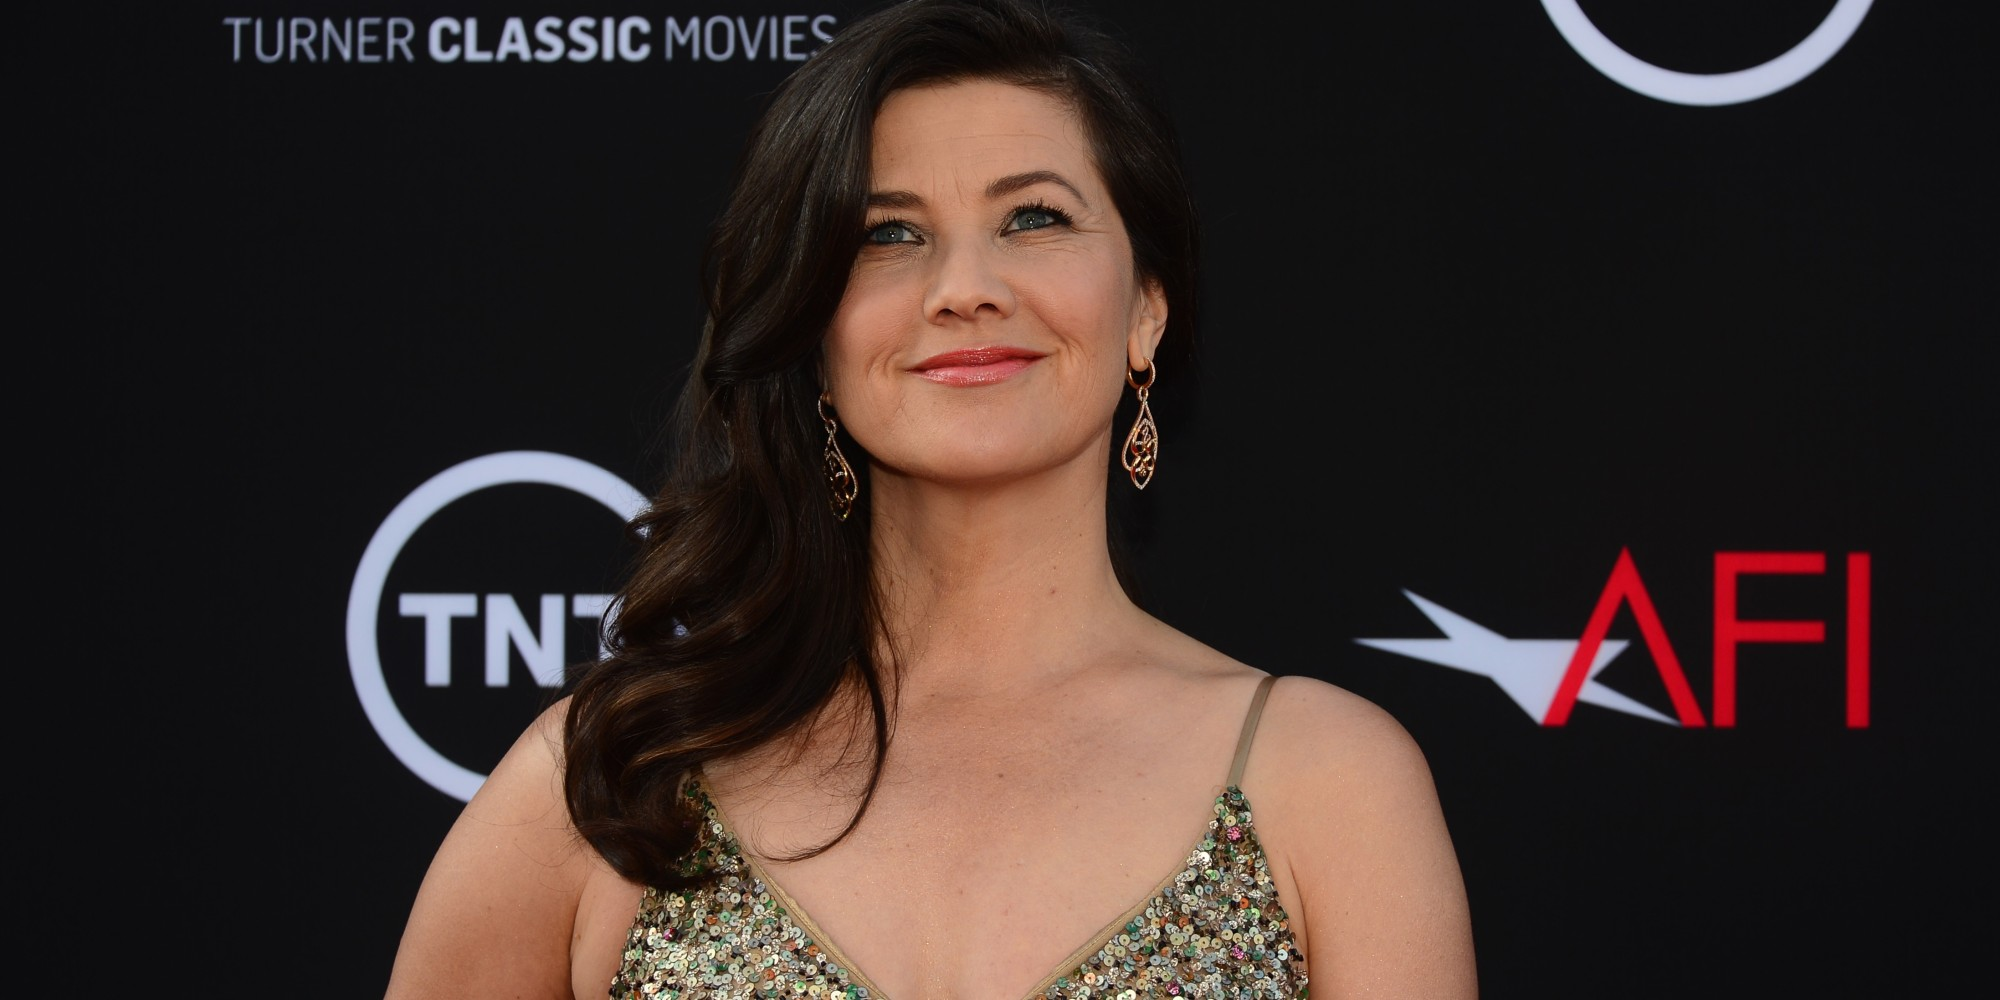 Daphne Zuniga Opens Up About Mindfulness And Finding Love In ORIGIN Magazine | HuffPost